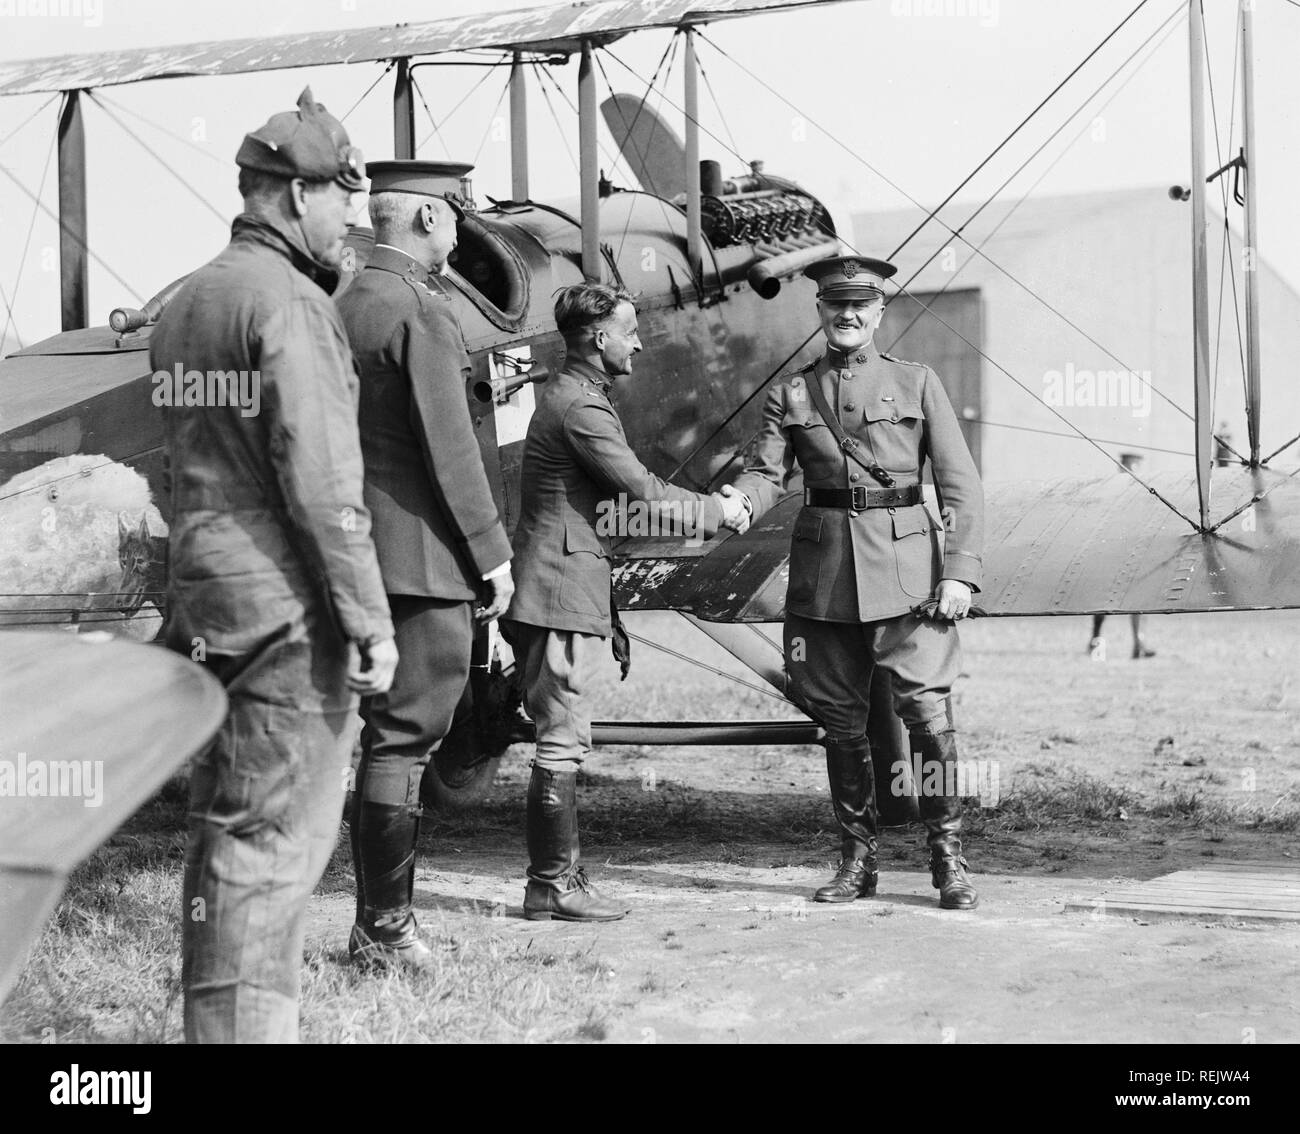 U.S. General John Pershing being Greeted by Captain Strus, National Photo Company, 1920 - Stock Image